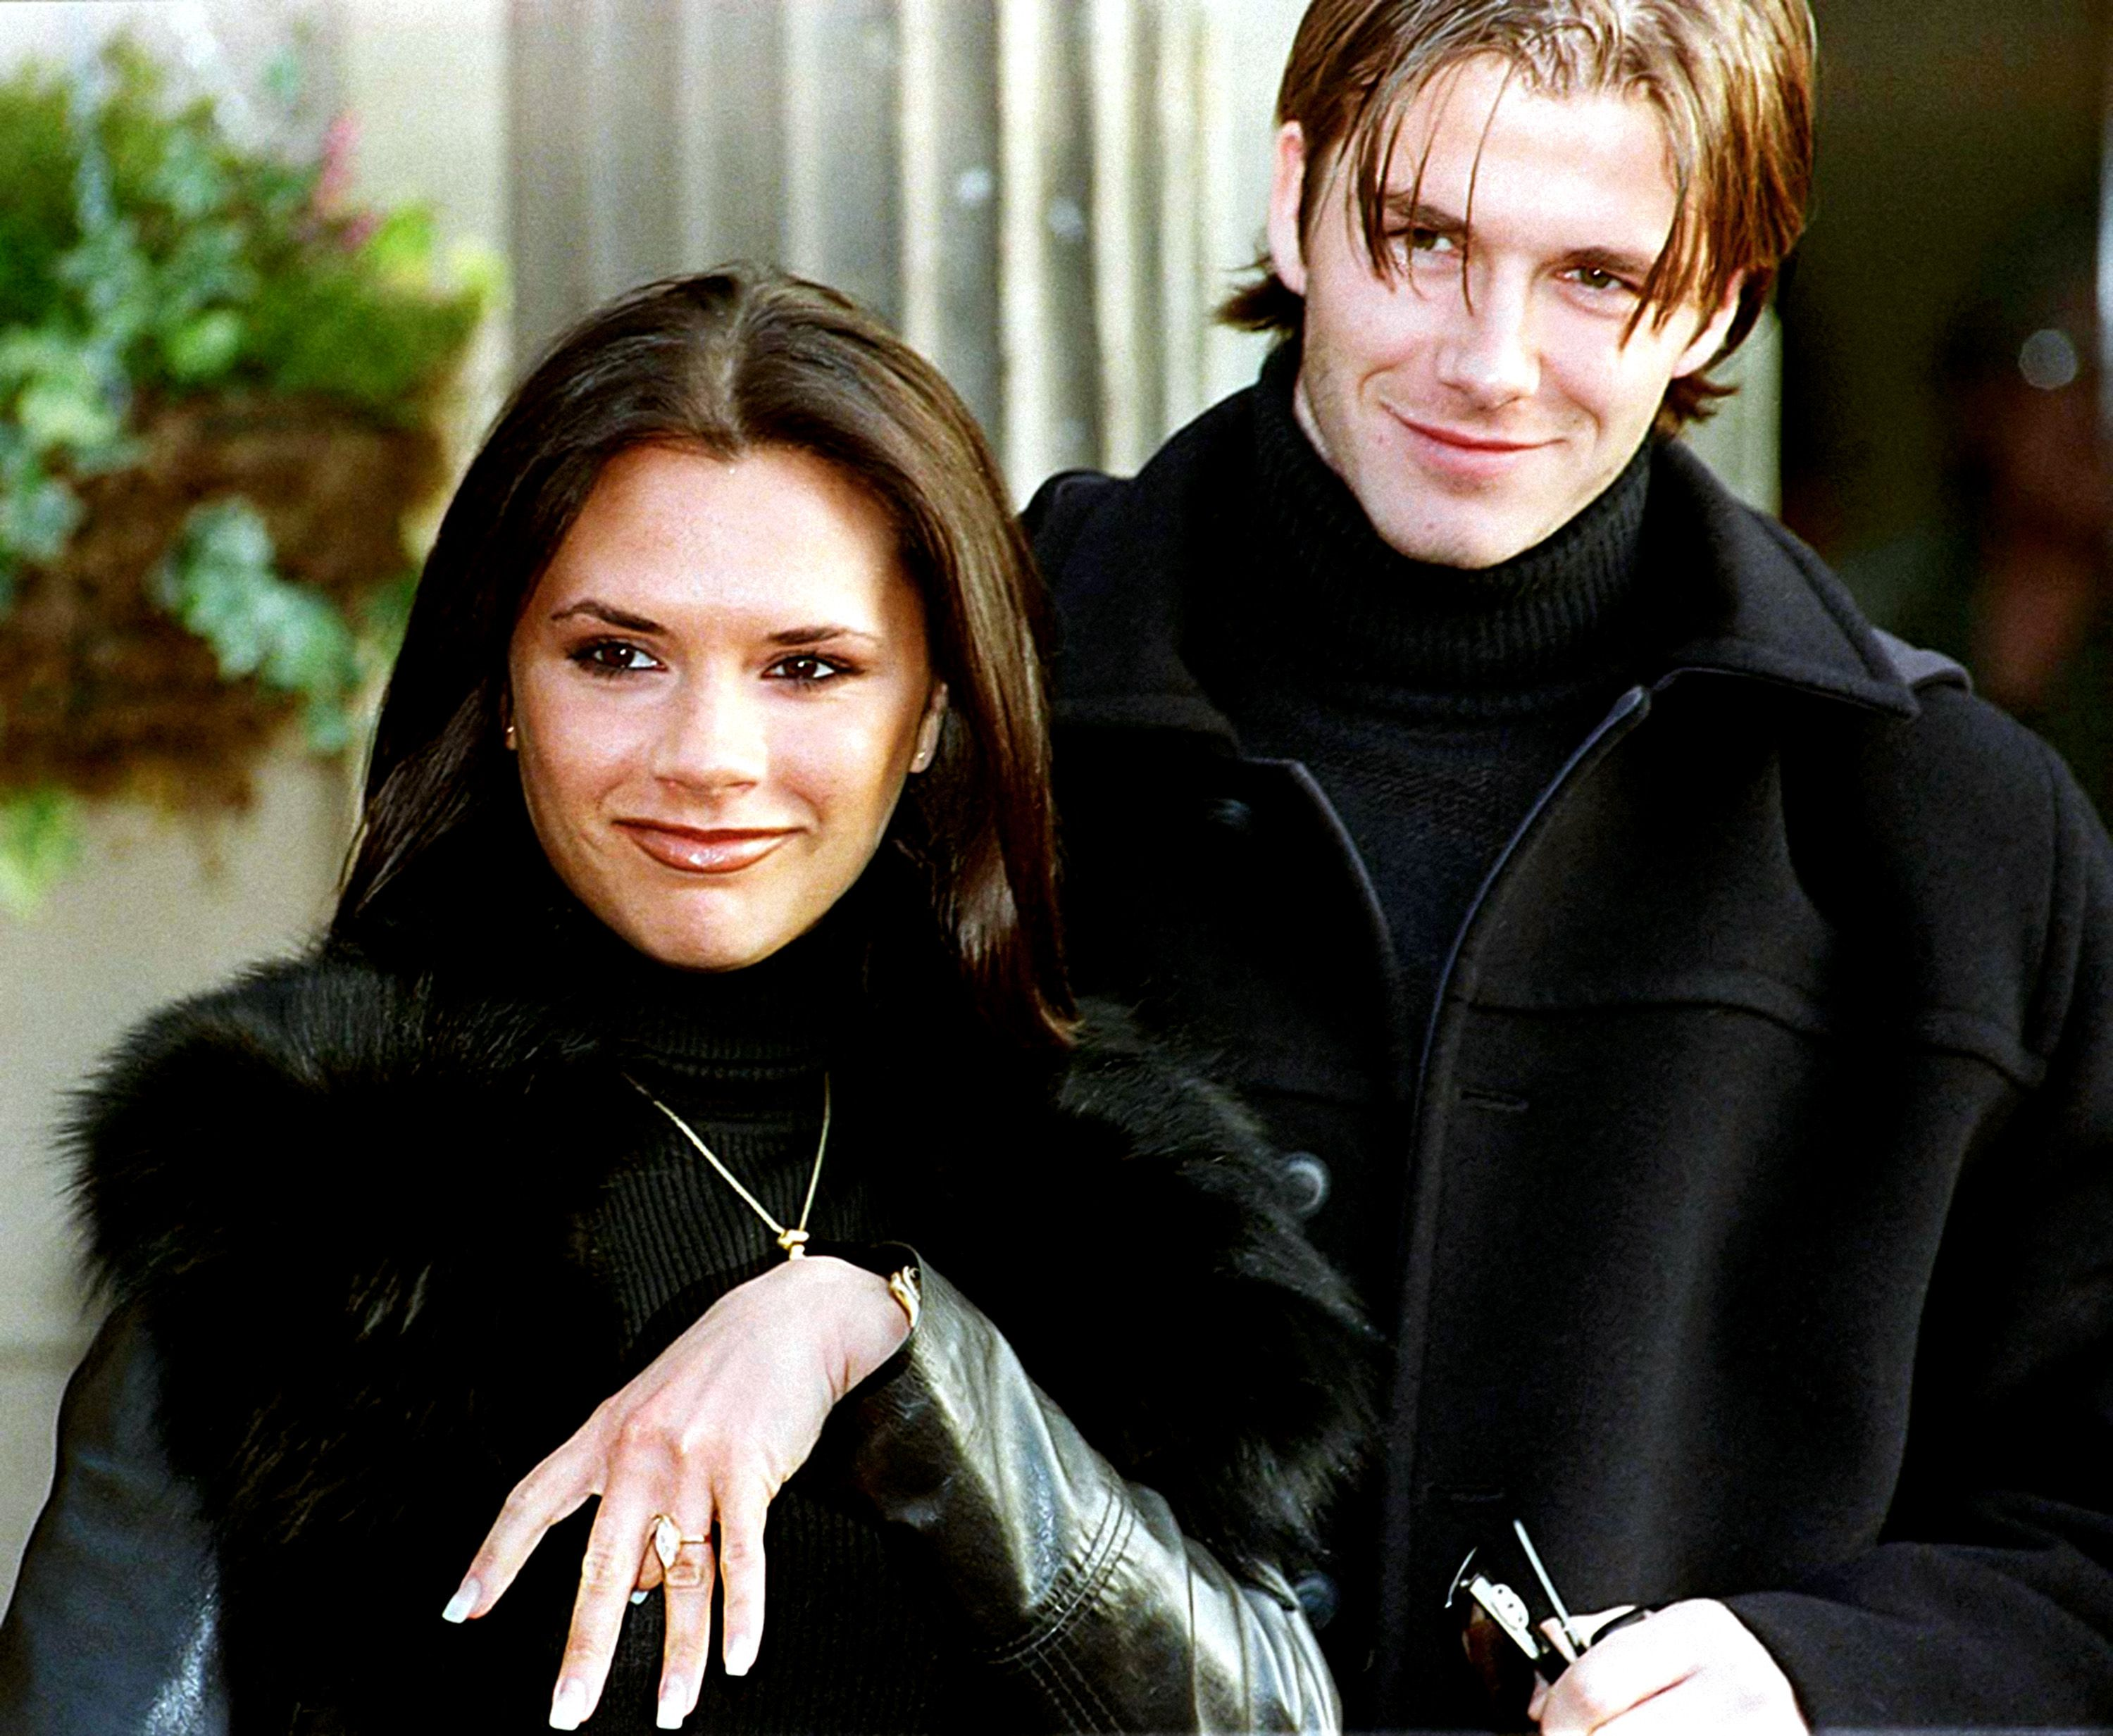 Image result for david and victoria beckham young